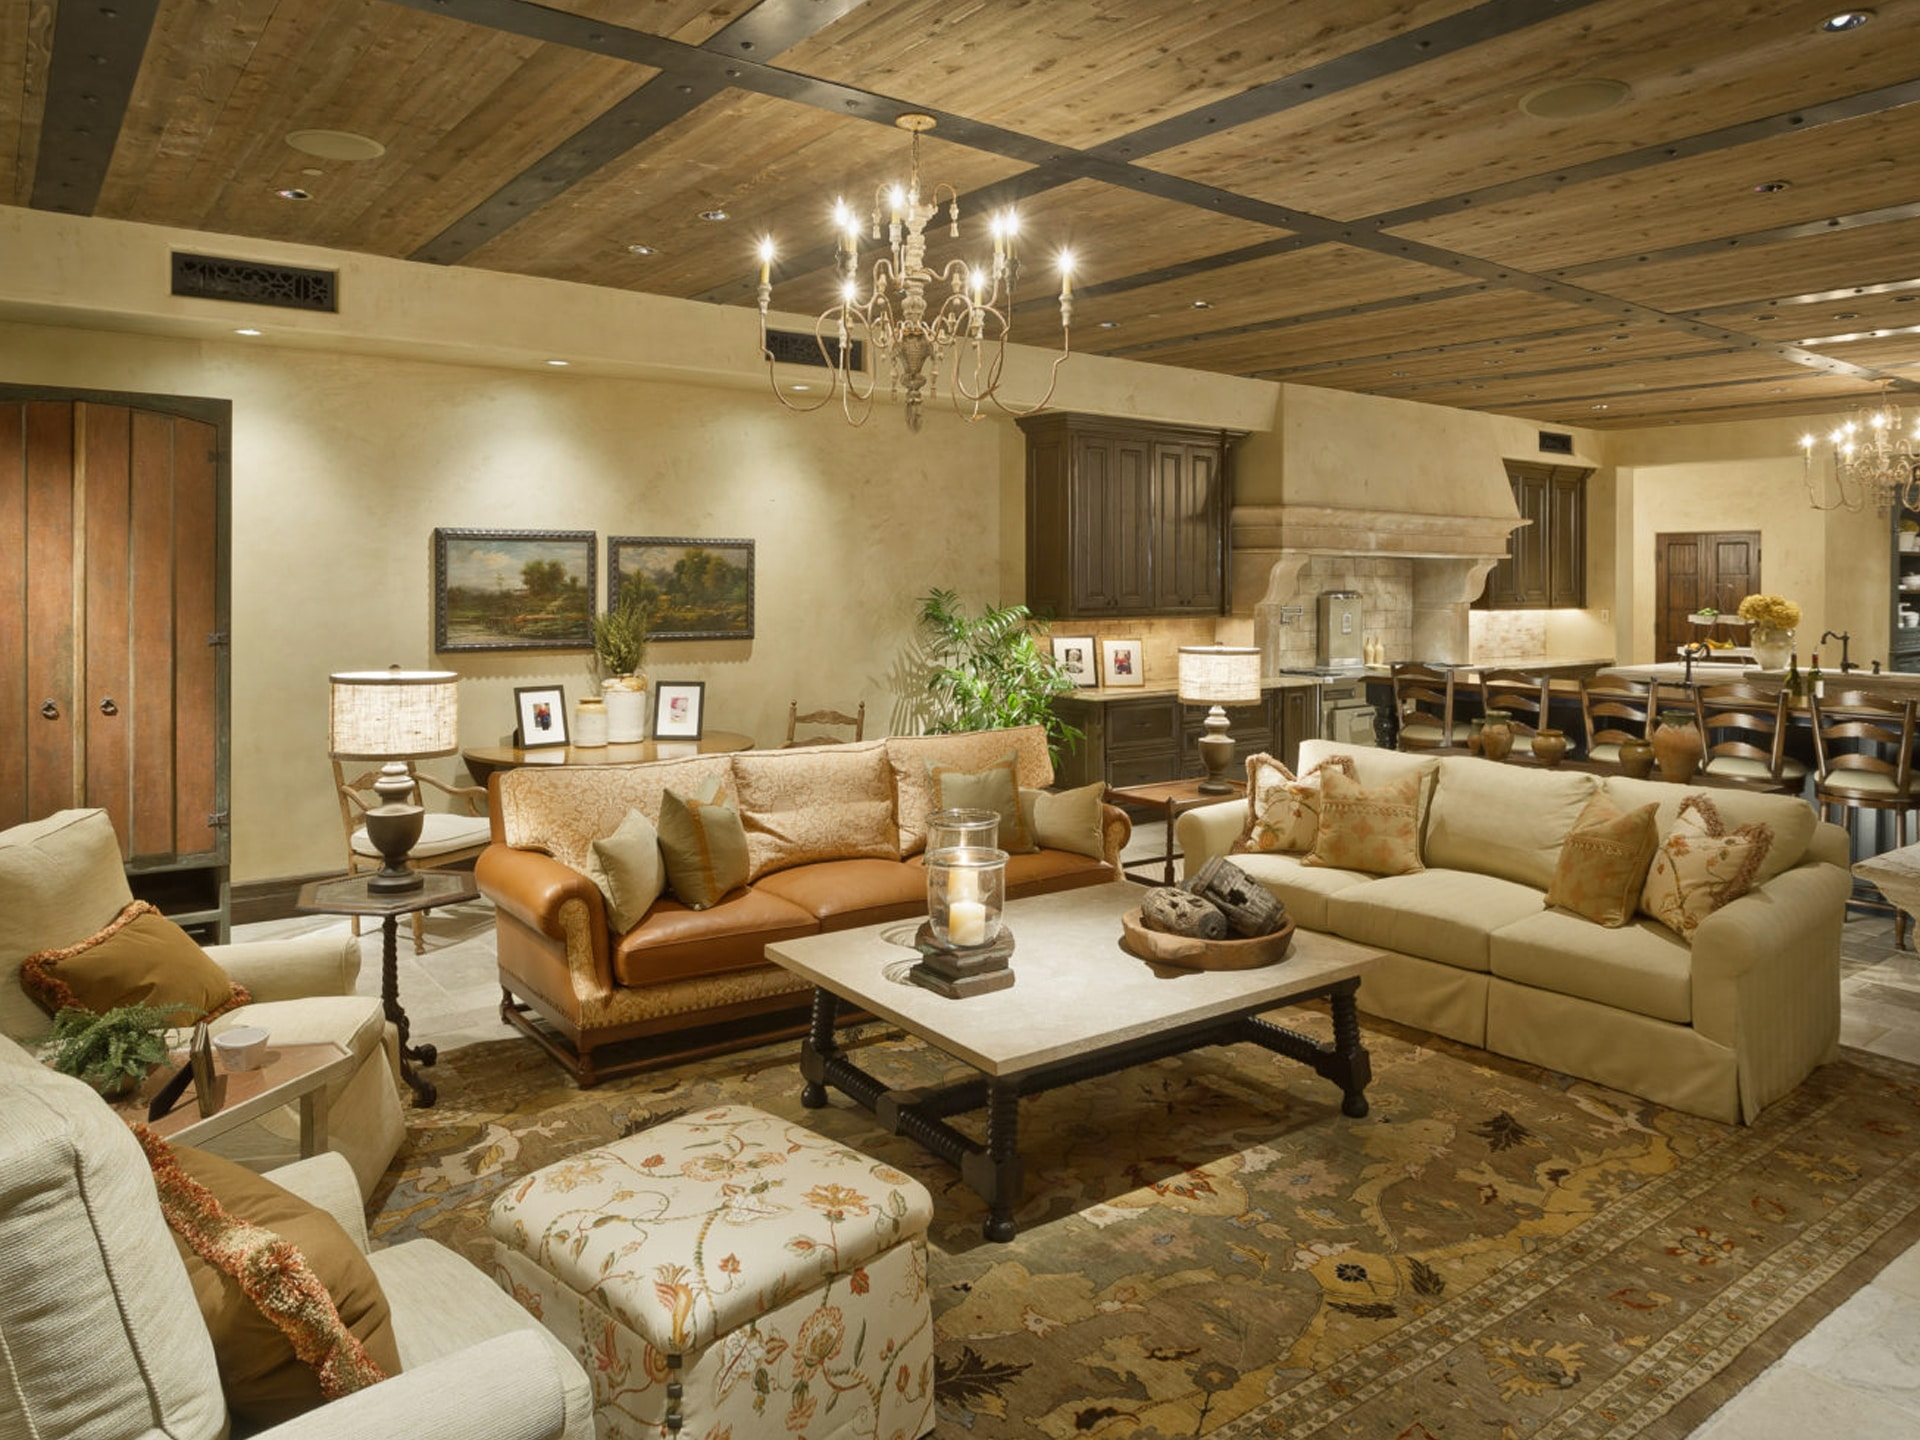 Mediterranean Luxury in Silverleaf